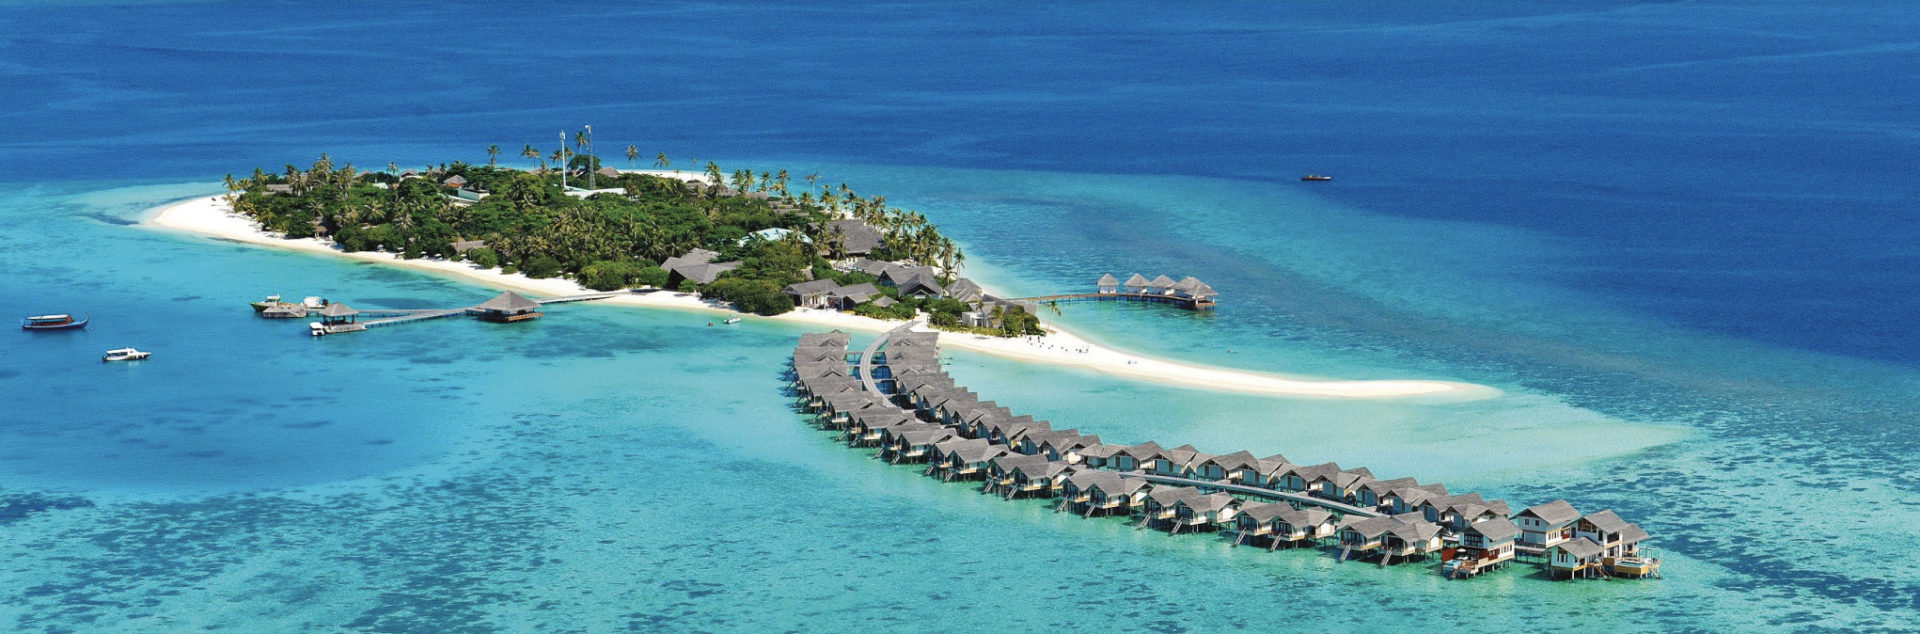 LUXURIA LIFESTYLE WELCOMES NEW ADVERTISER, THE EXCLUSIVE LILY BEACH AND HIDEAWAY RESORTS FROM THE MALDIVES